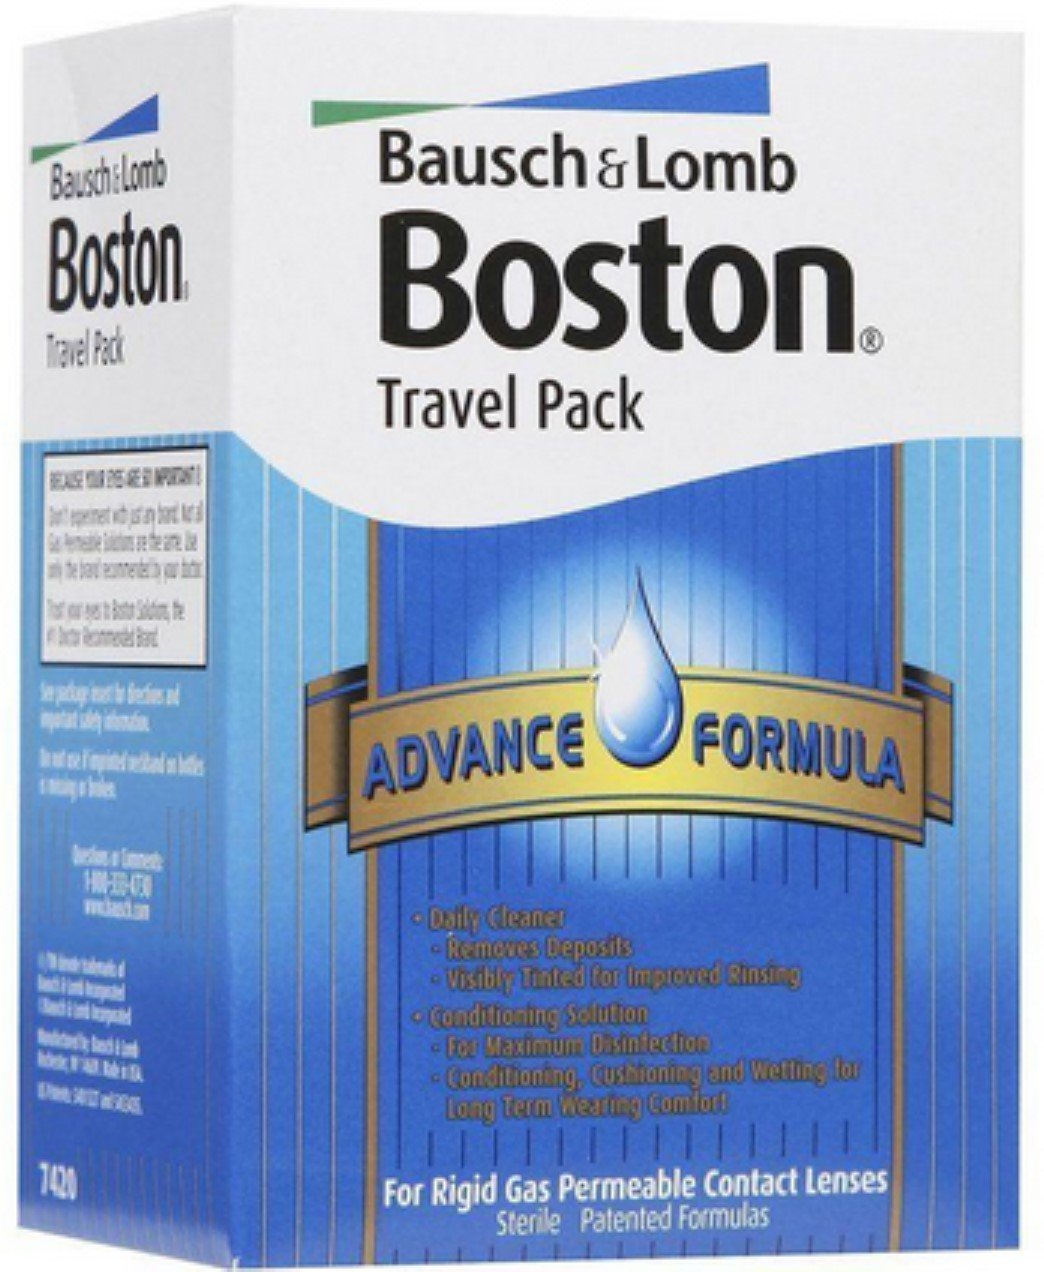 Bausch & Lomb Boston Advance Formula Travel Pack 1 Each (Pack of 6) by Bausch & Lomb (Image #1)